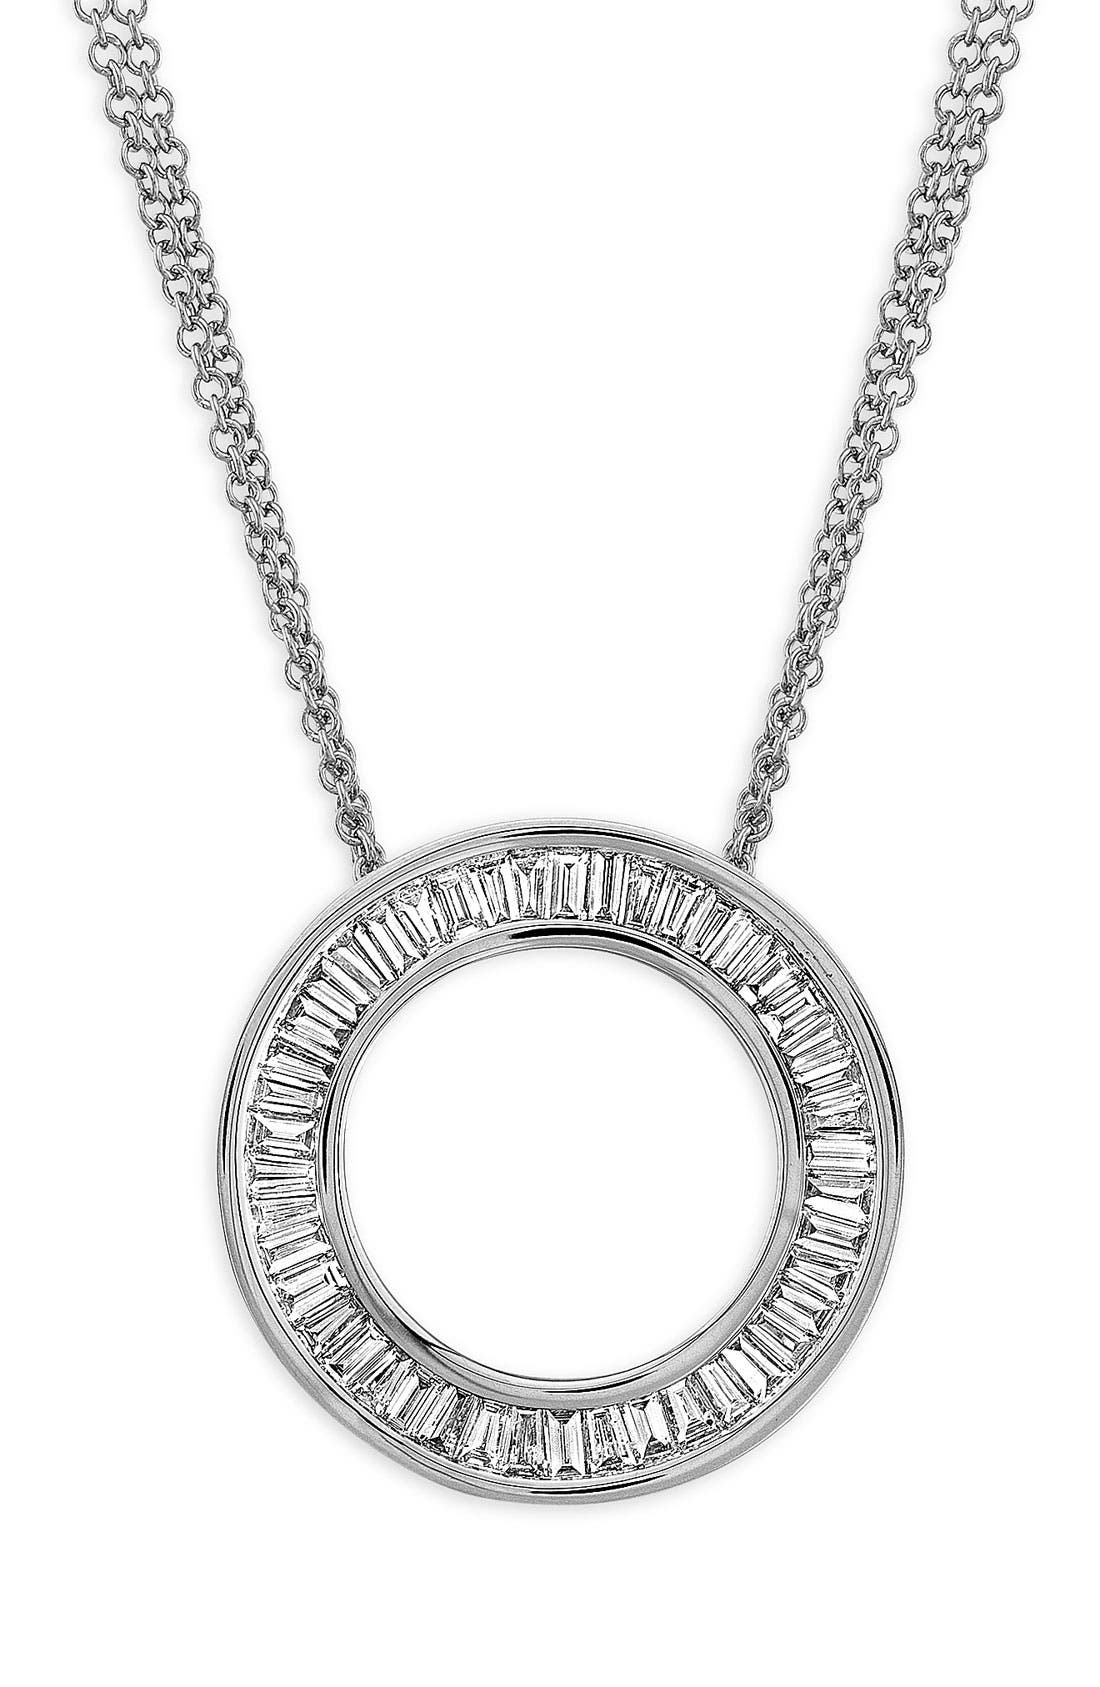 Alternate Image 1 Selected - Bony Levy 'Circle of Life' Medium Diamond Pendant Necklace (Nordstrom Exclusive)